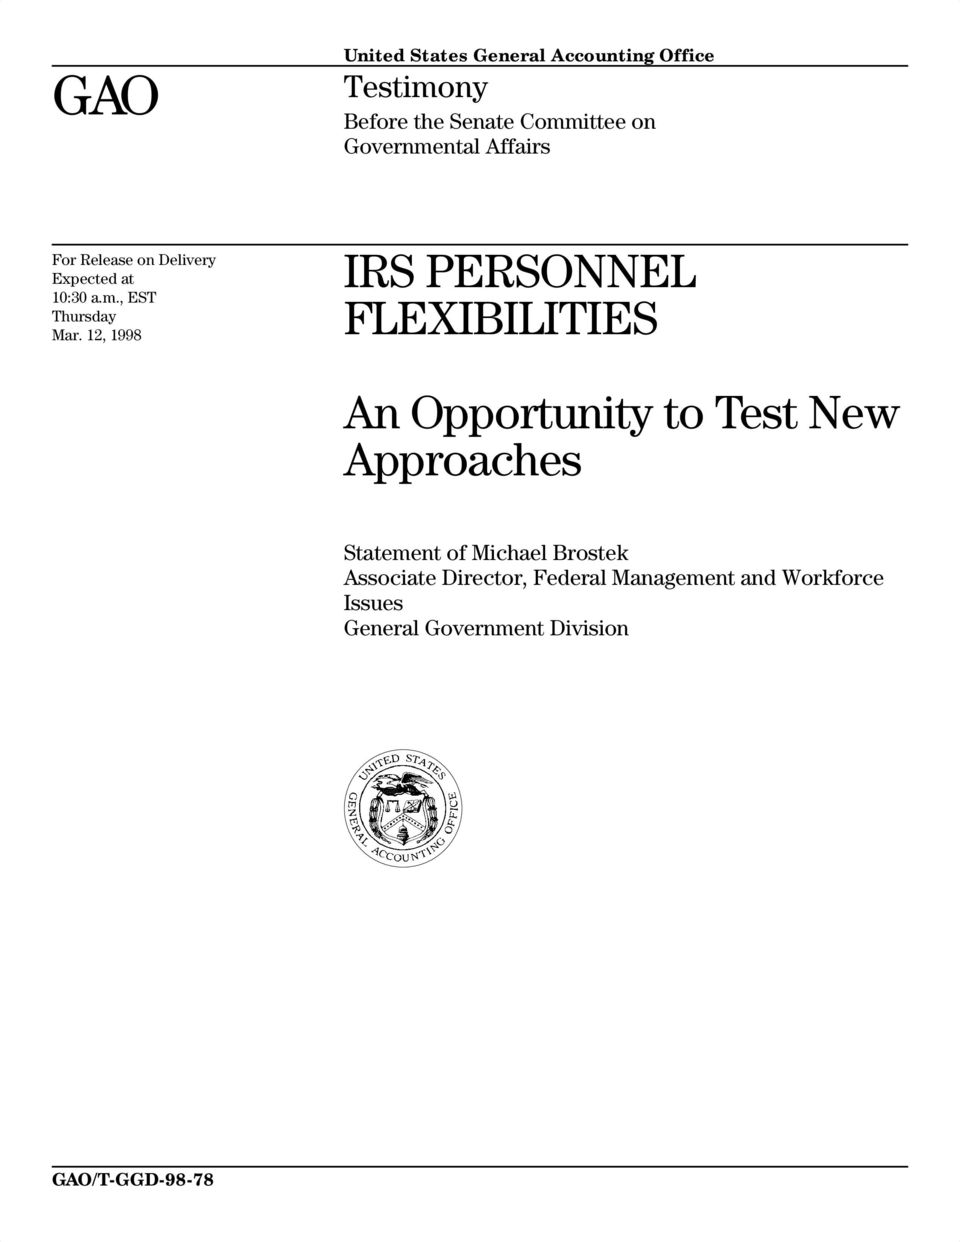 12, 1998 IRS PERSONNEL FLEXIBILITIES An Opportunity to Test New Approaches Statement of